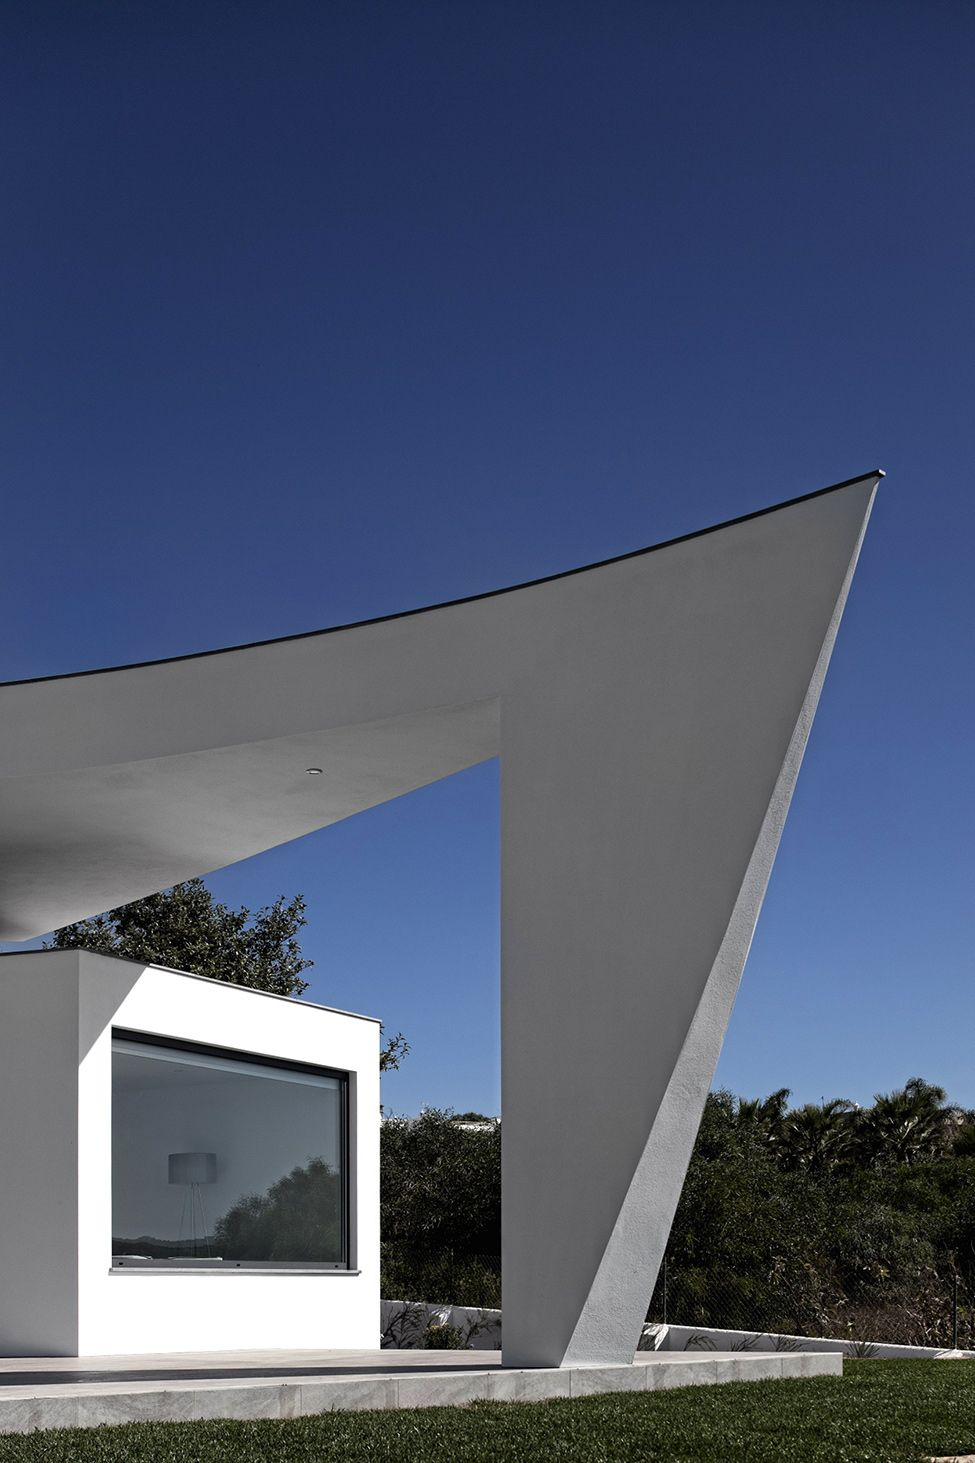 White Silhouette With An Intricate Geometry in Portugal: Colunata House